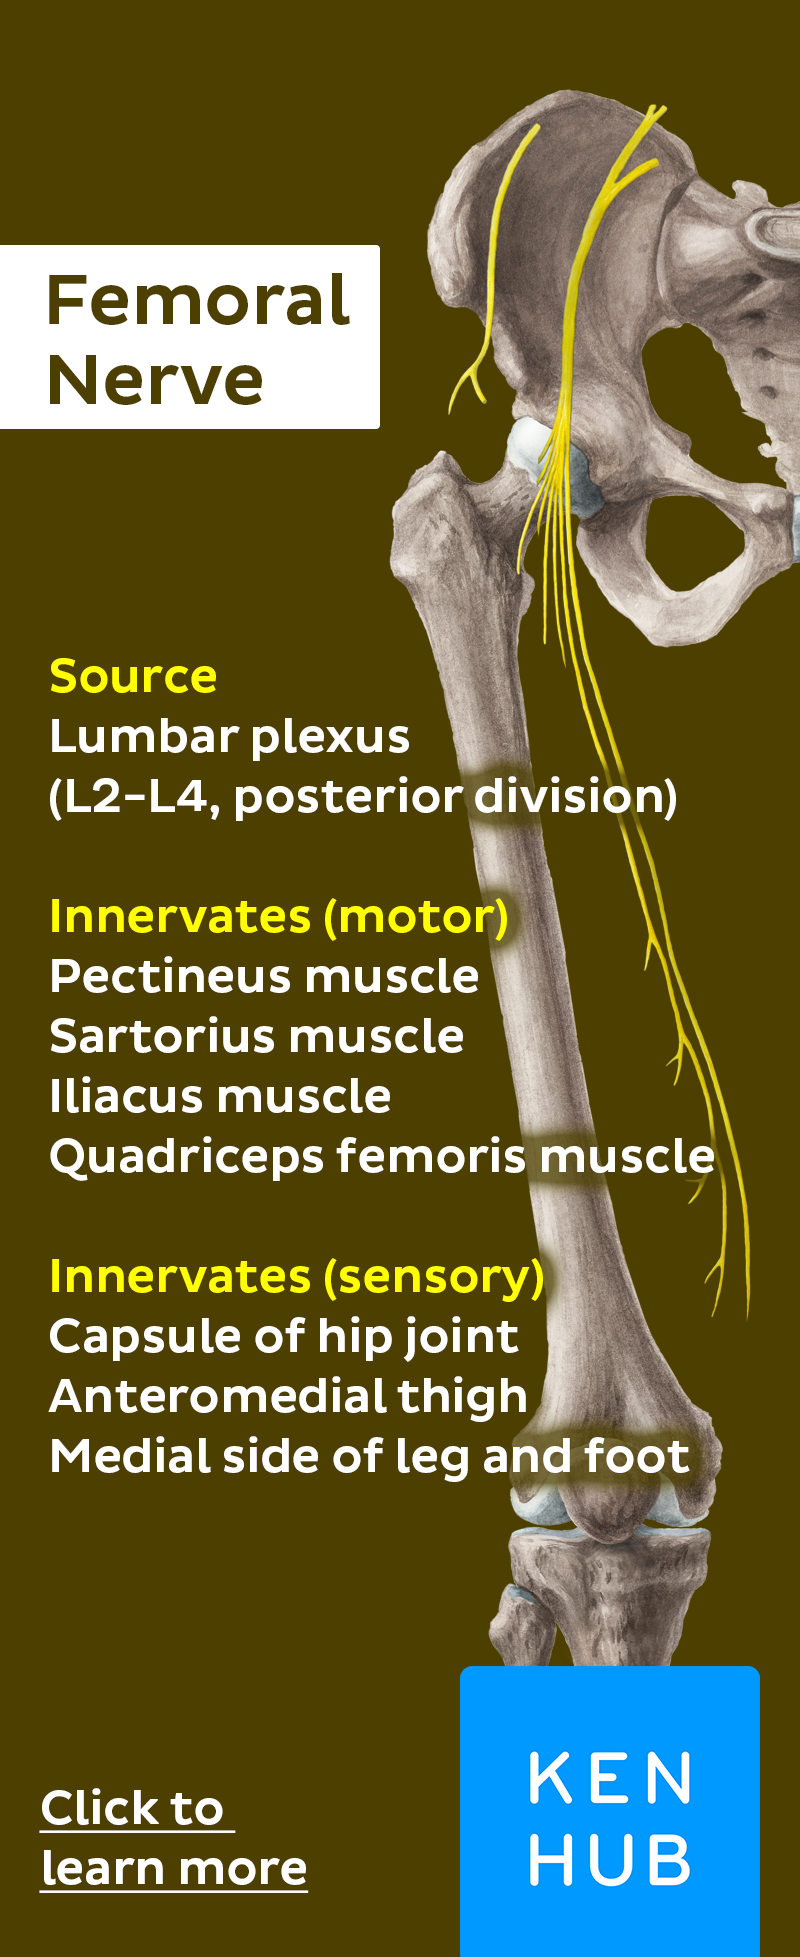 Femoral Nerve | Femoral nerve, Anatomy and Essentials